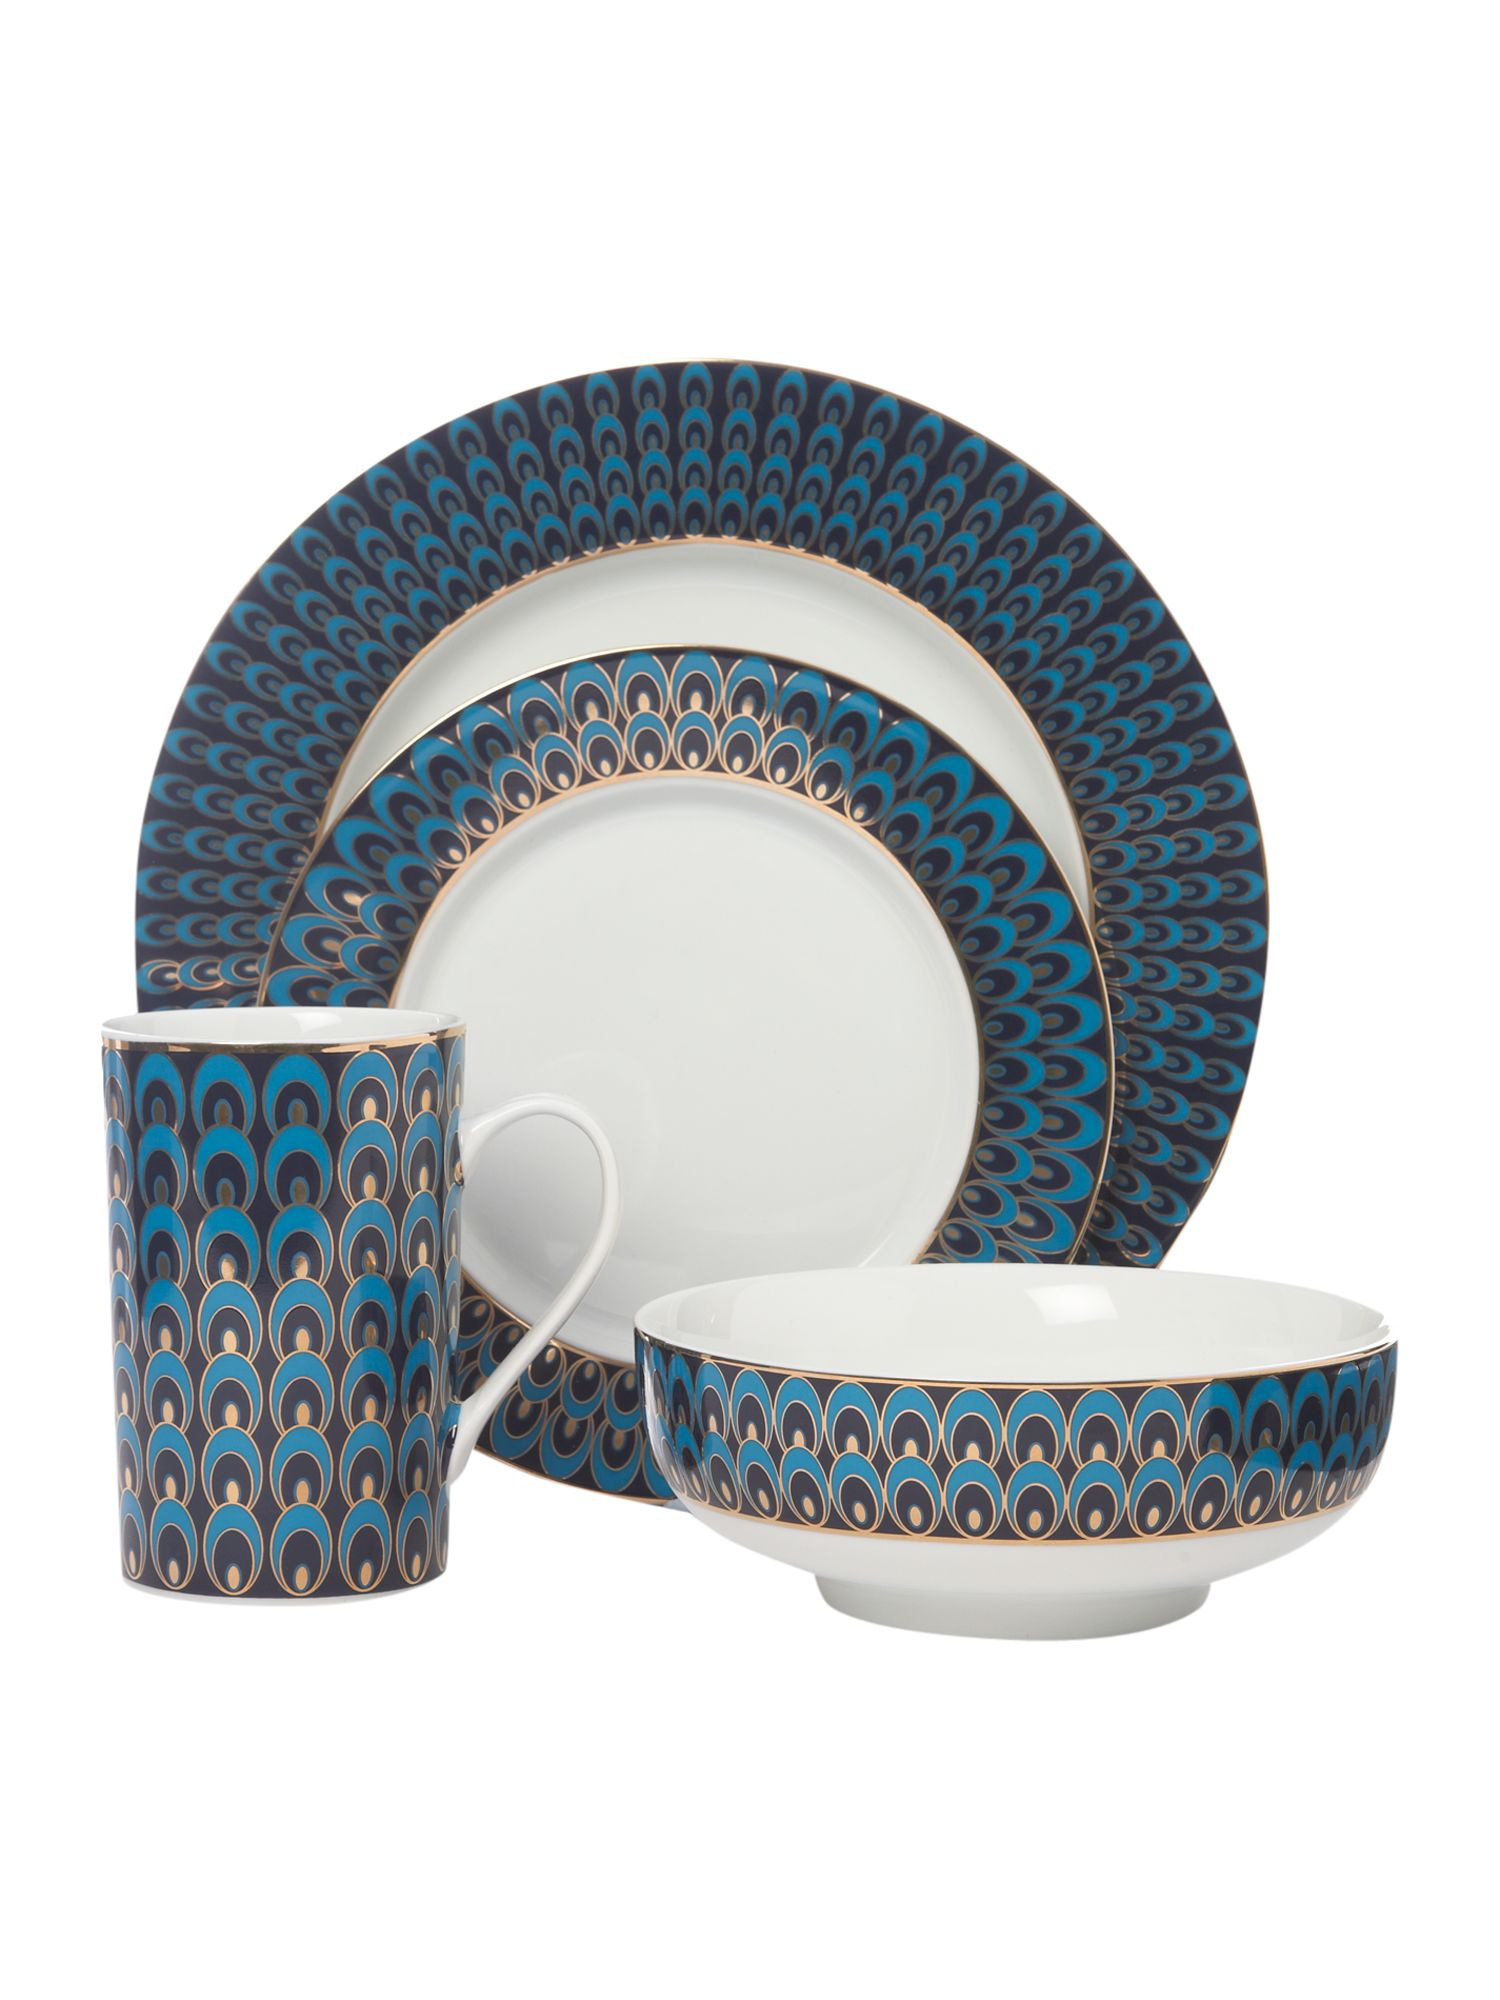 Peacock 16 piece dinner set